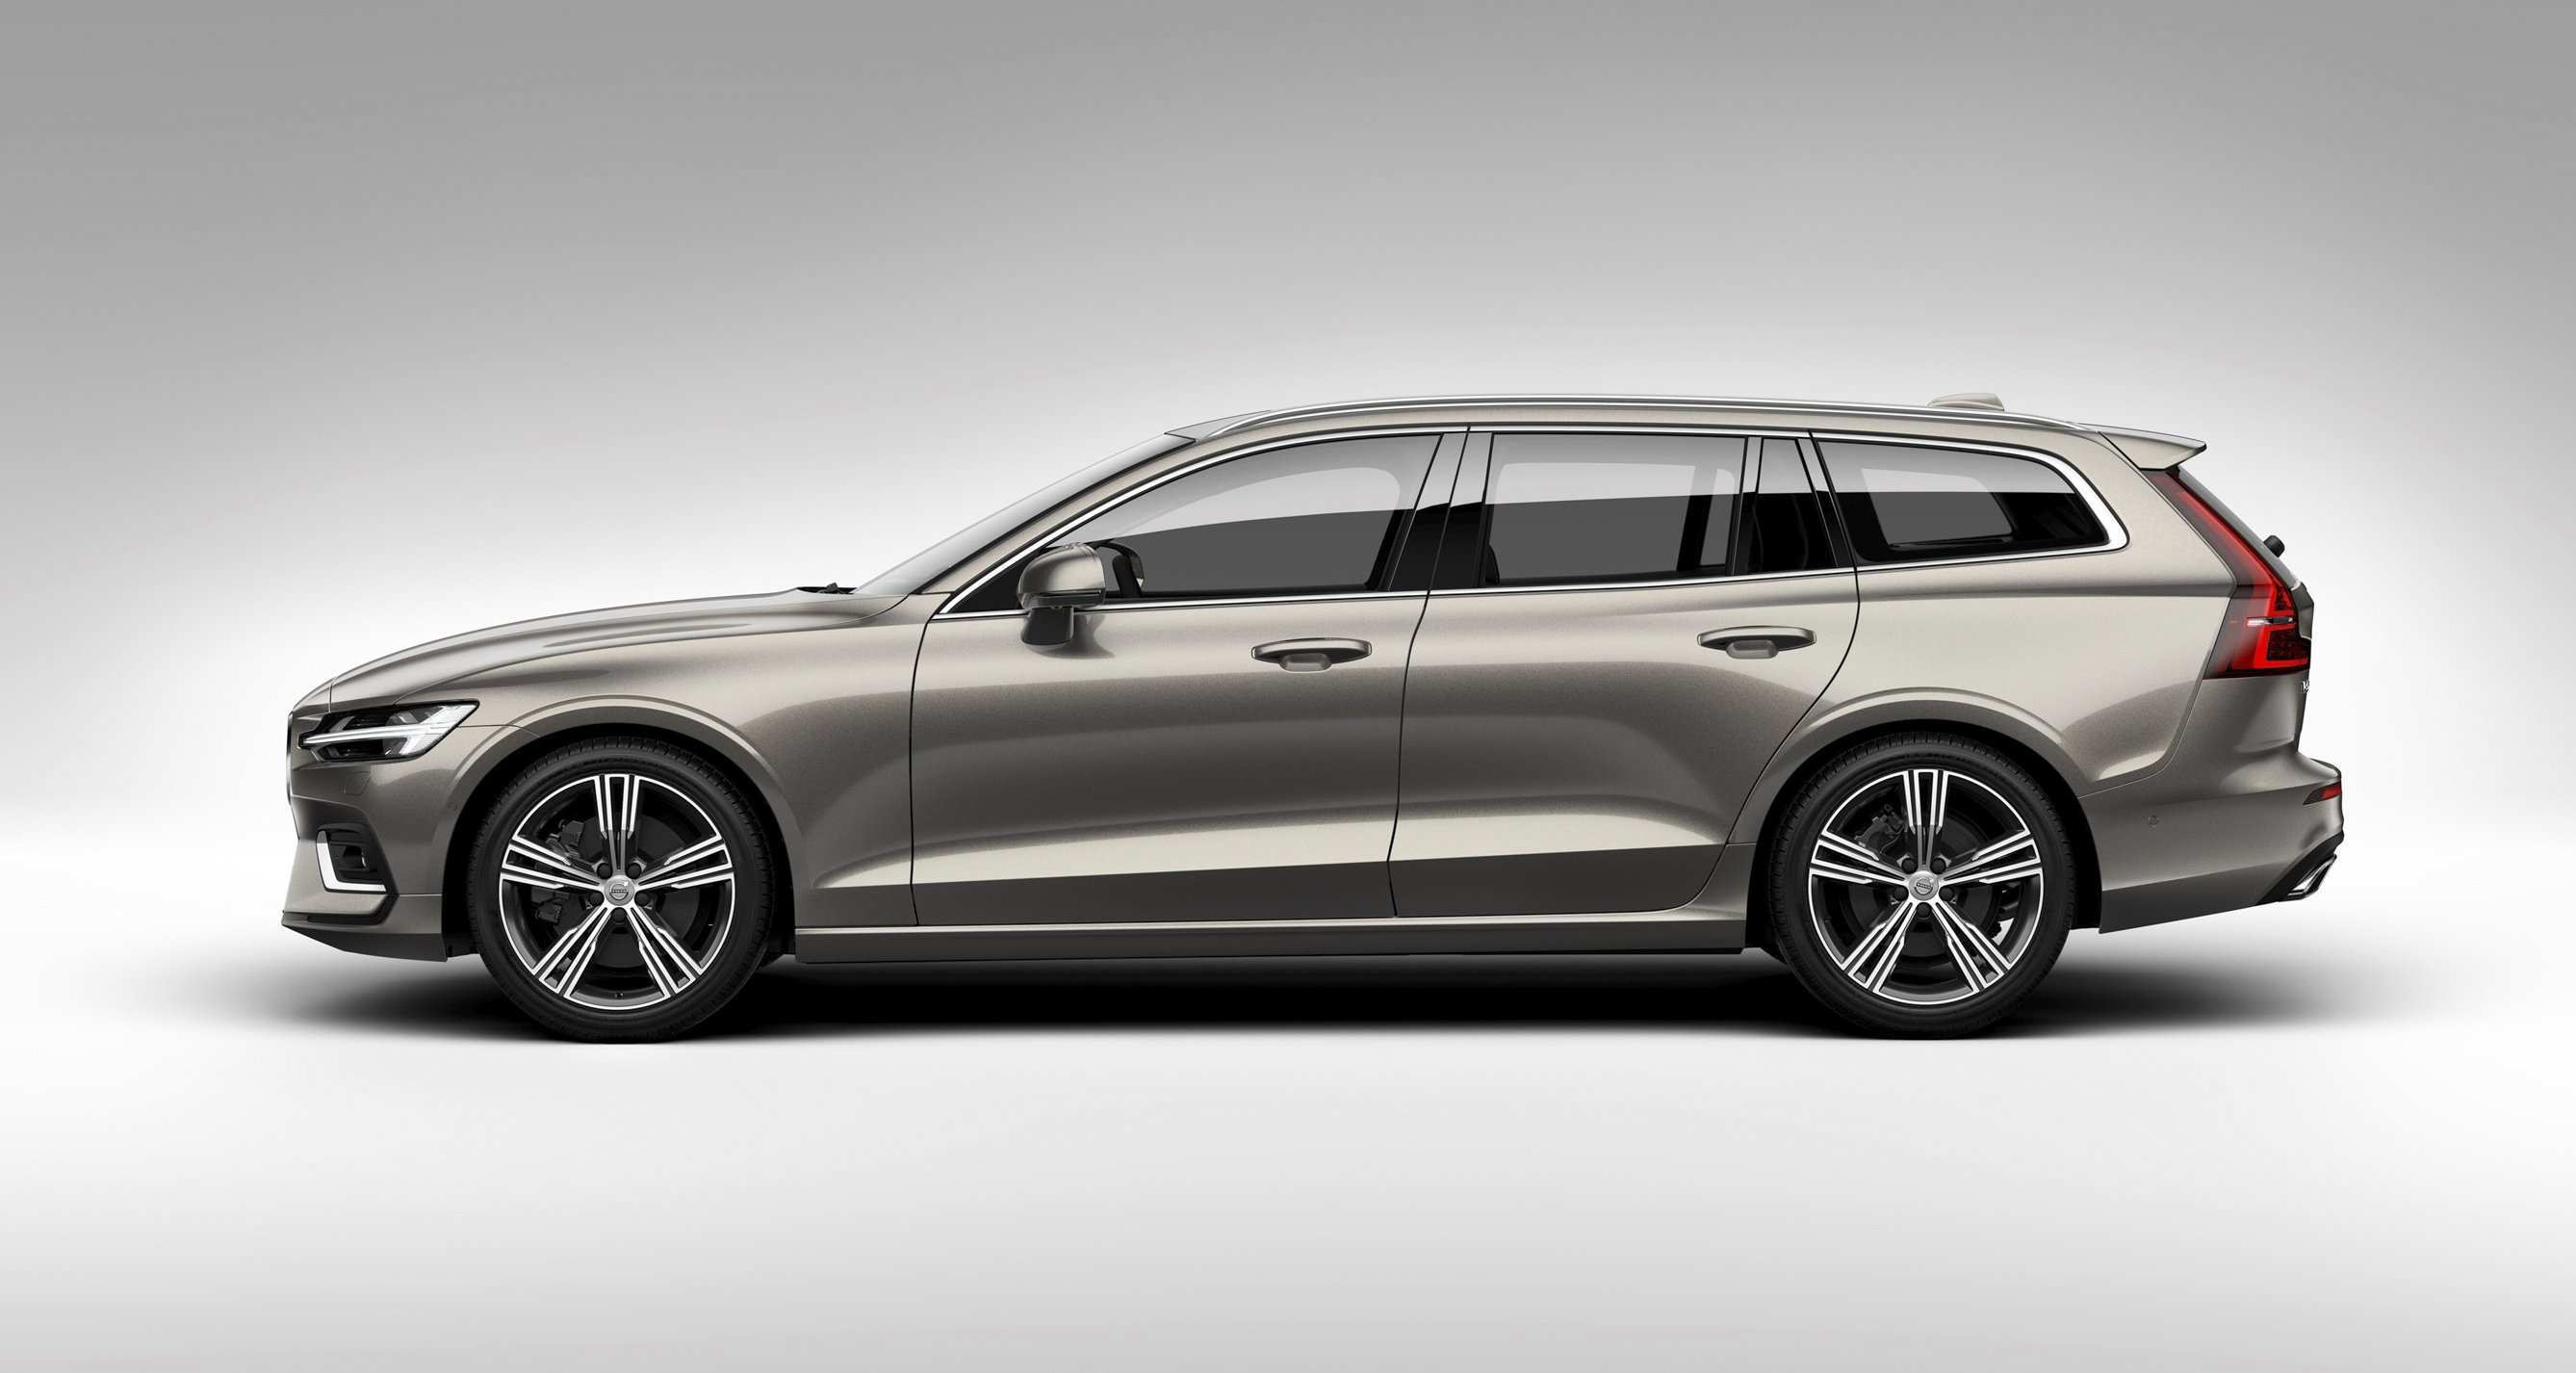 37 The Best 2019 Volvo Station Wagon Concept